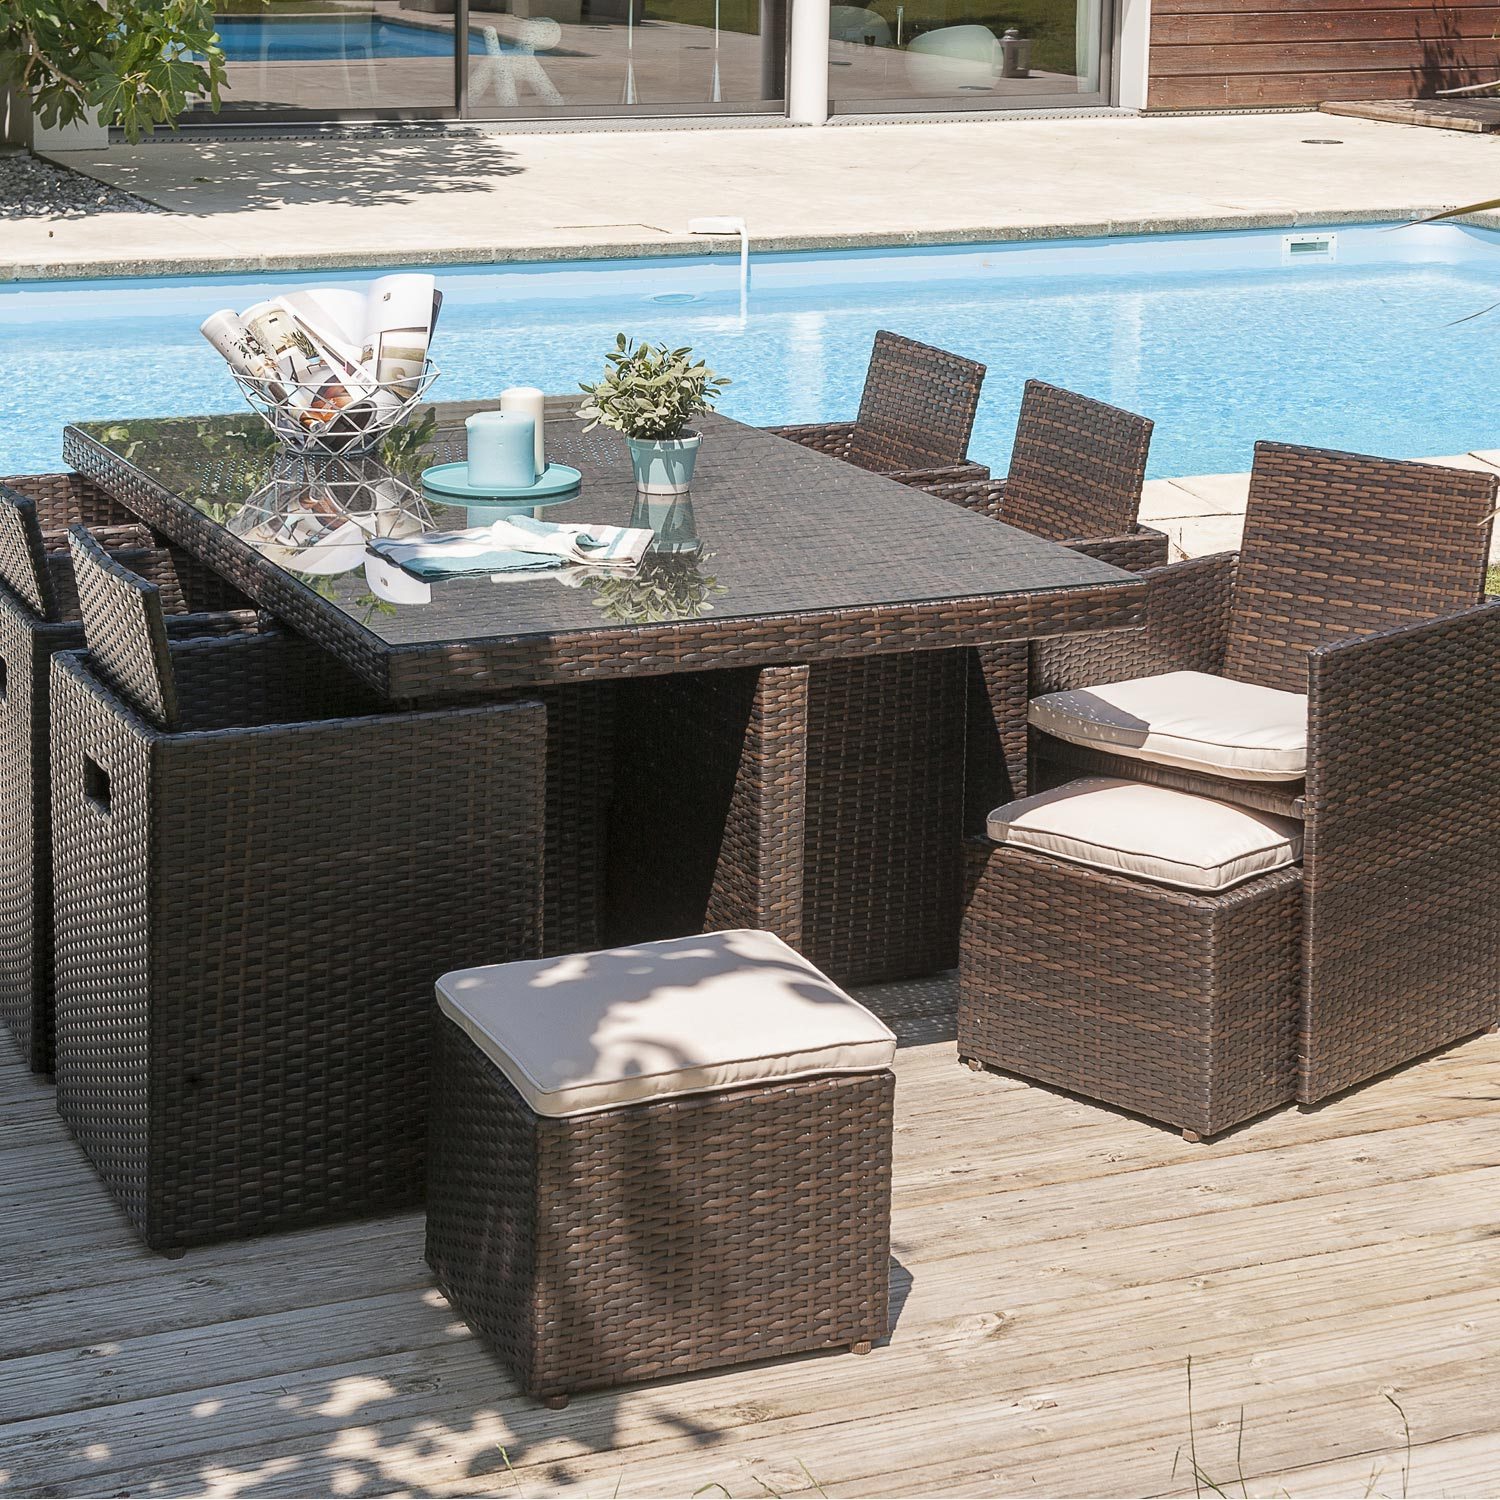 salon de jardin r sine tress e chocolat table 6 fauteuils. Black Bedroom Furniture Sets. Home Design Ideas